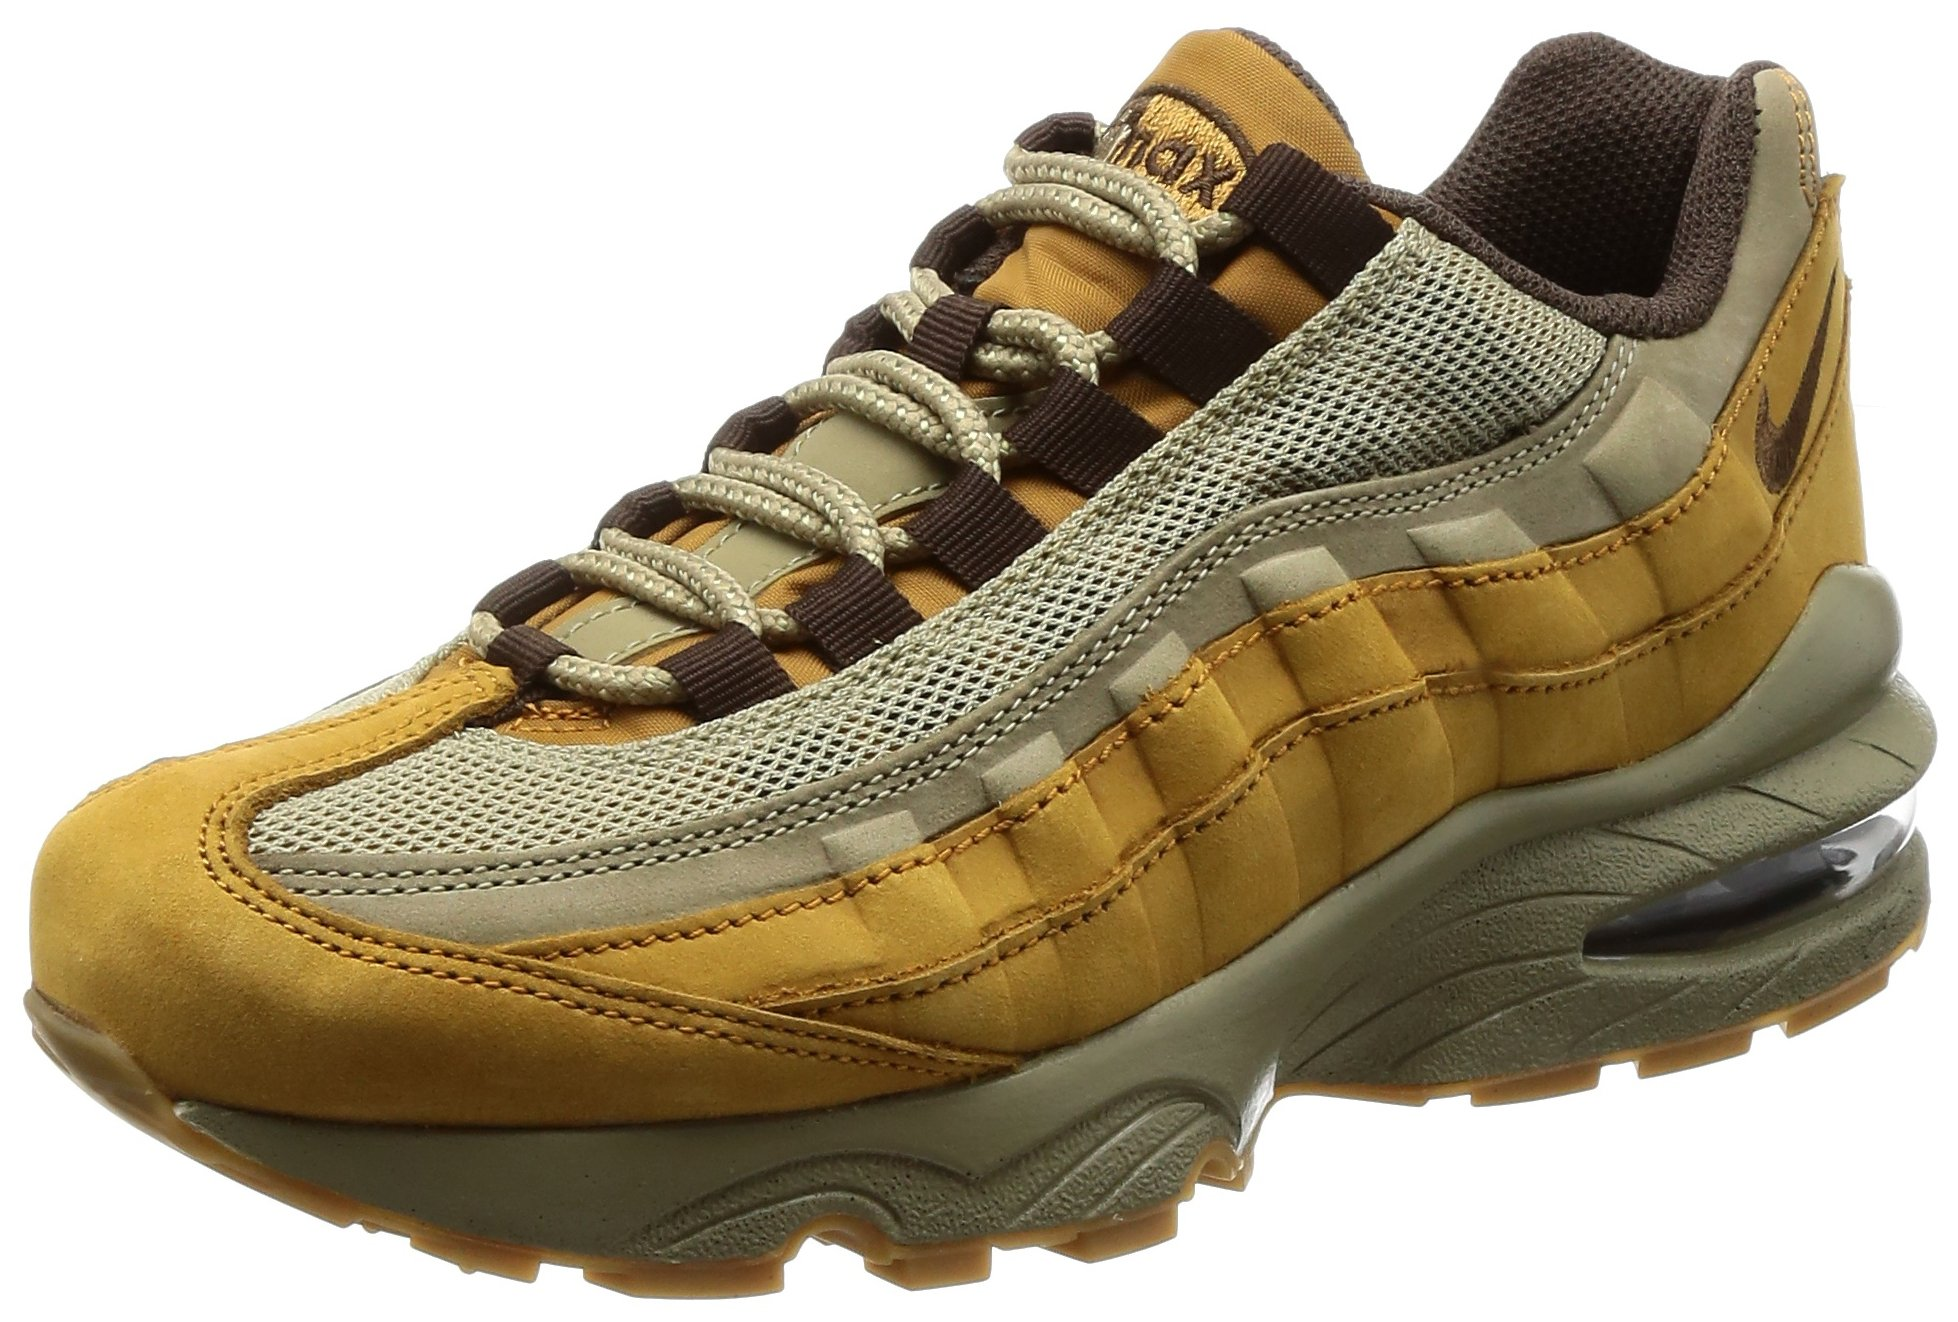 Nike Air Max 95 (5 Big Kid, Beige)